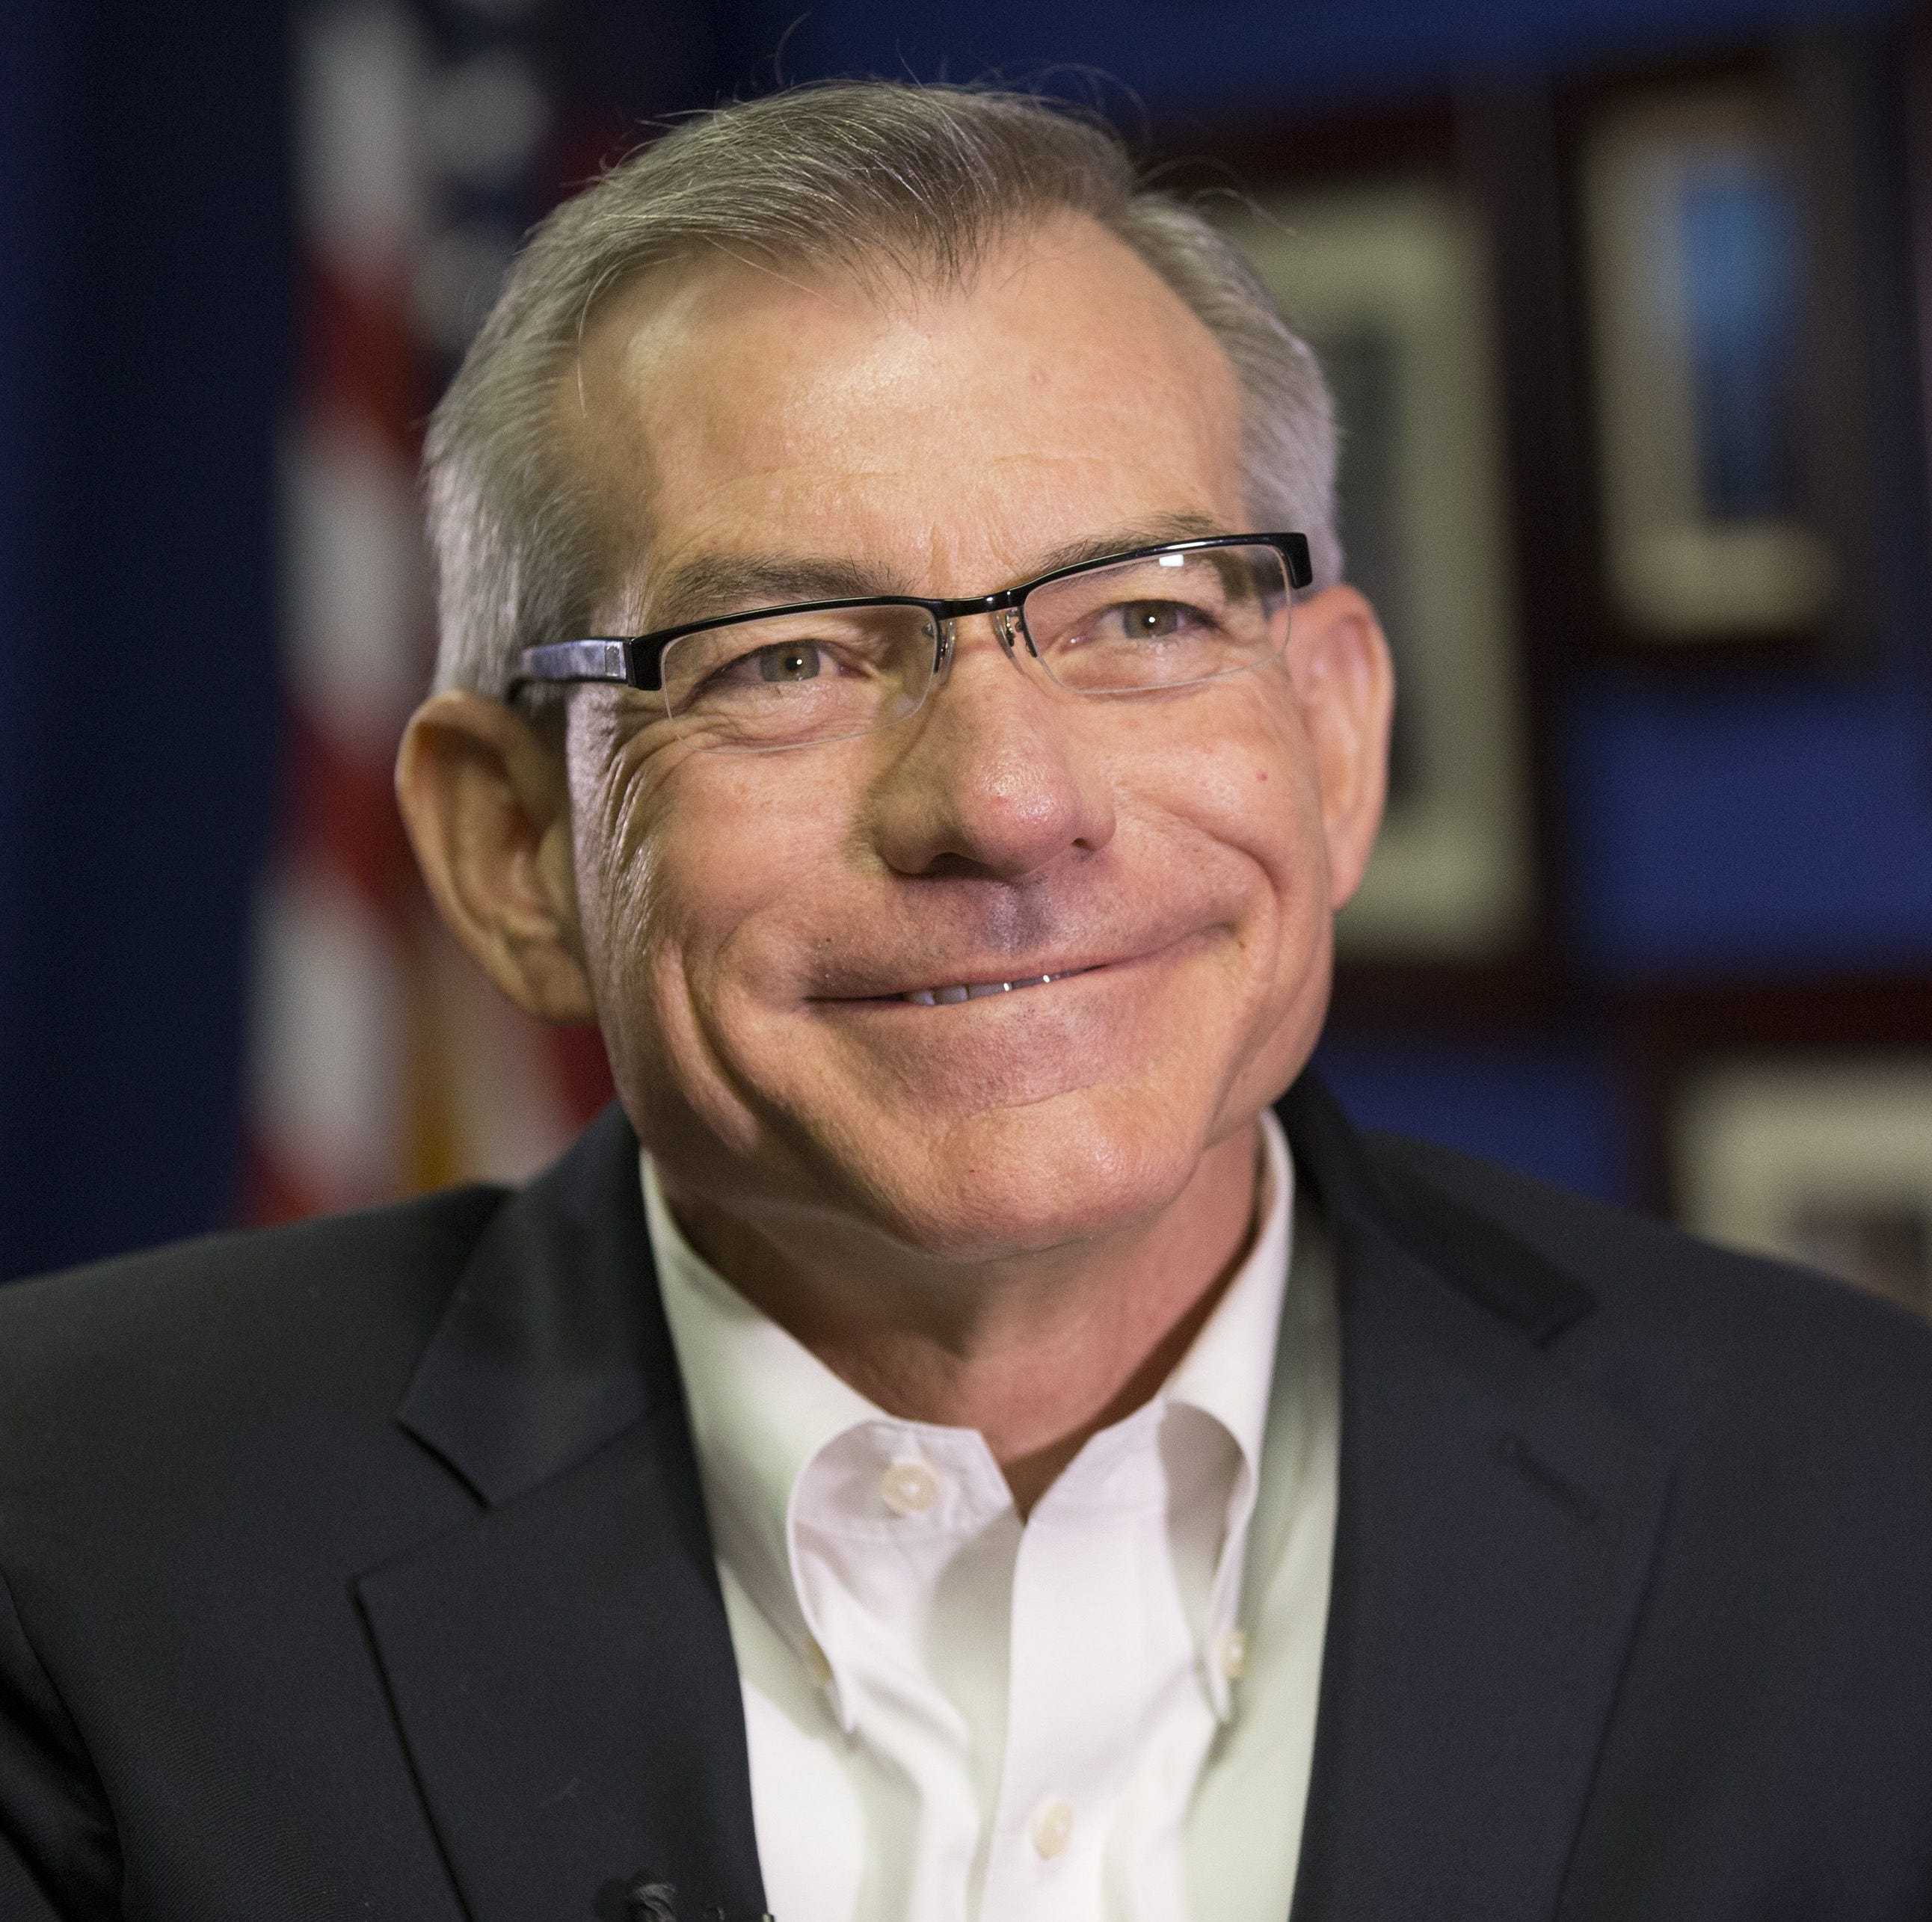 House Ethics Committee reveals who is overseeing ethics case against Rep. David Schweikert